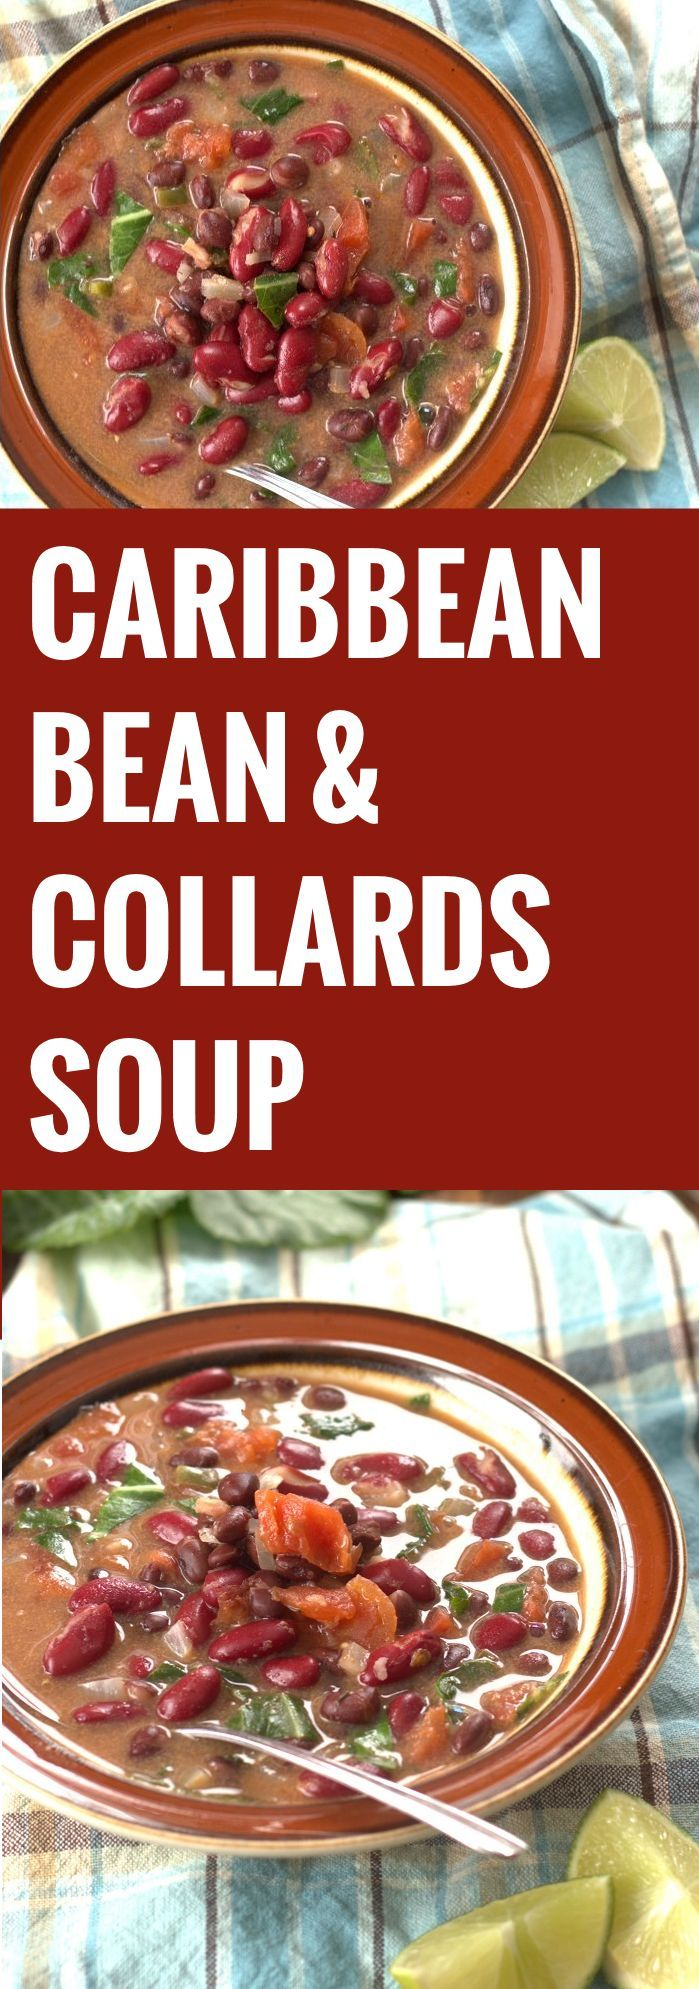 Caribbean Bean Soup with Collards